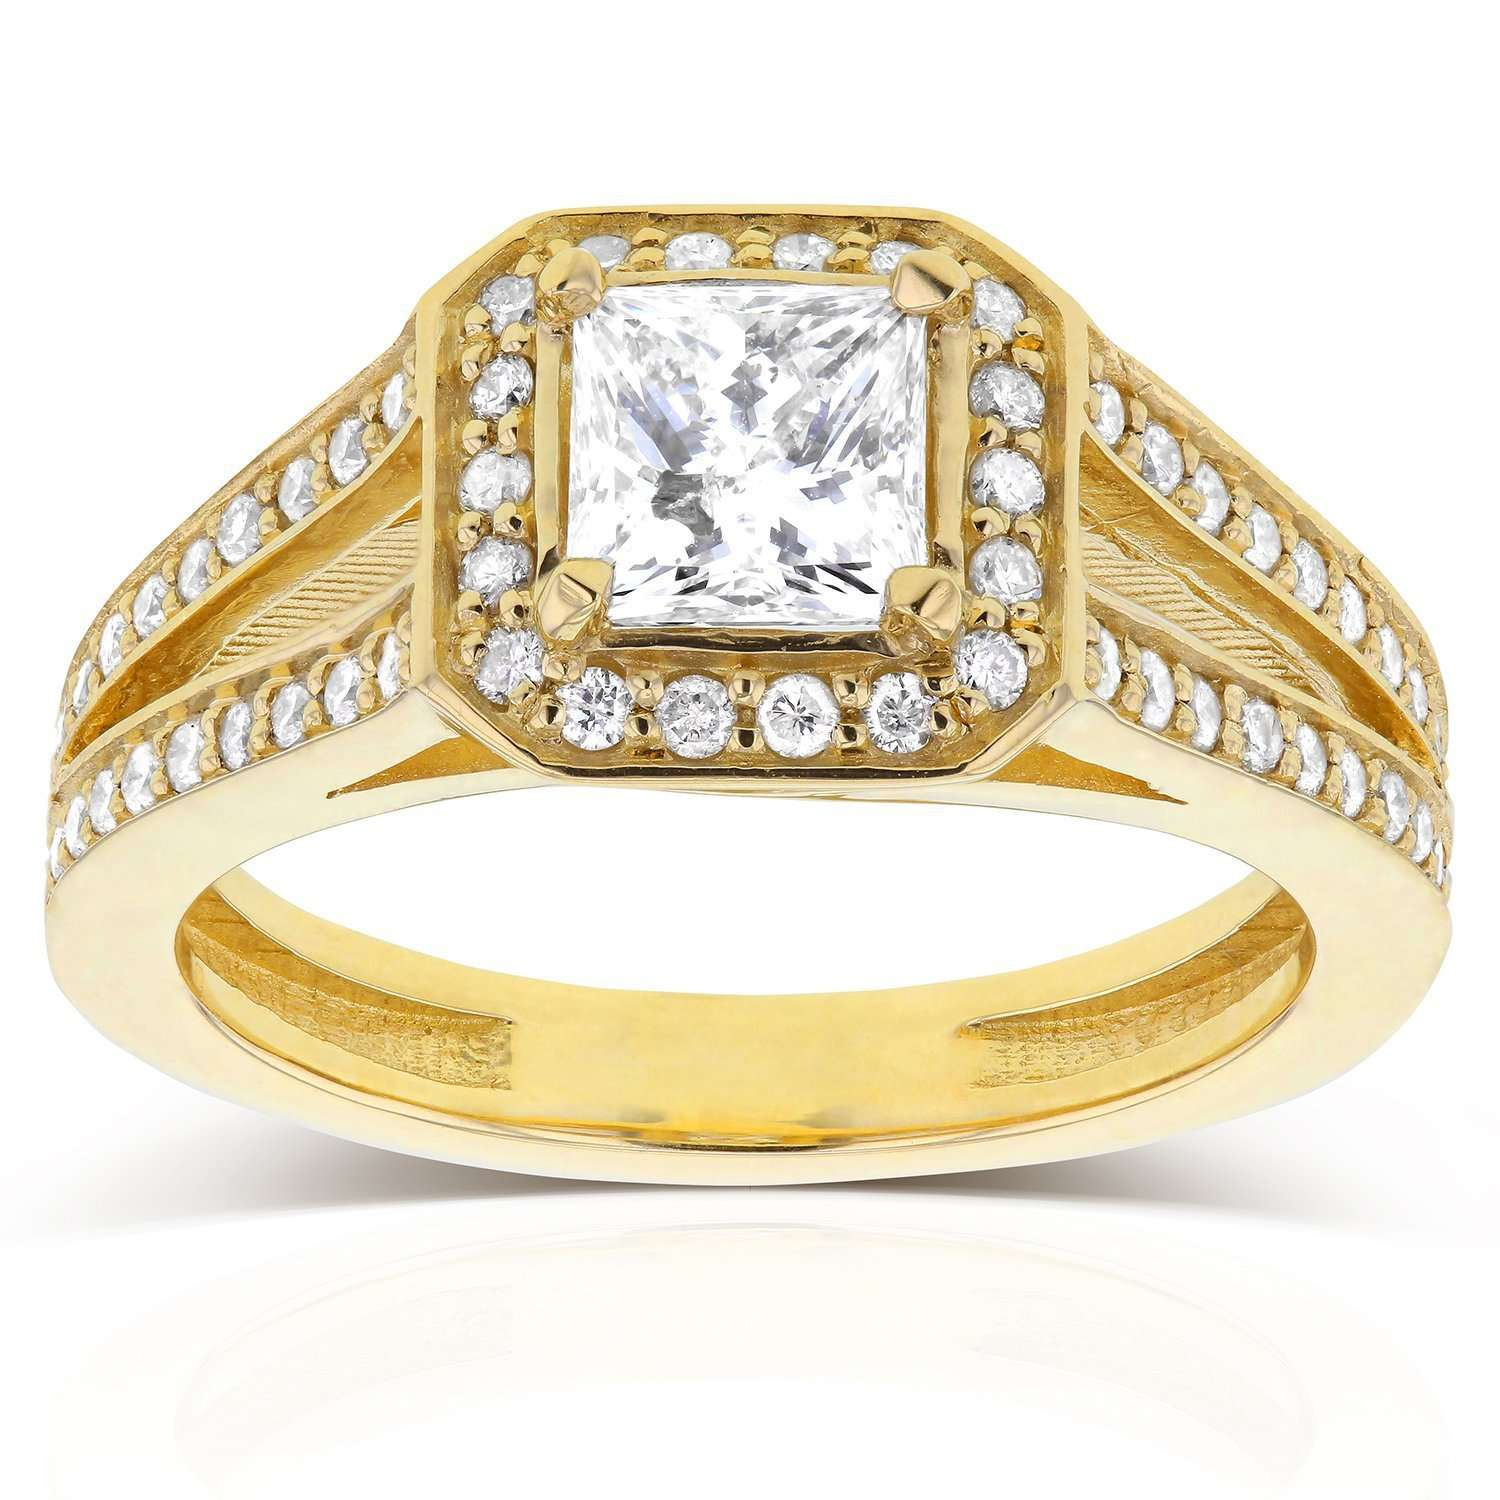 Best Princess Cut Diamond Halo Engagement Ring 1 1/8 CTW in 14k Yellow Gold - 7